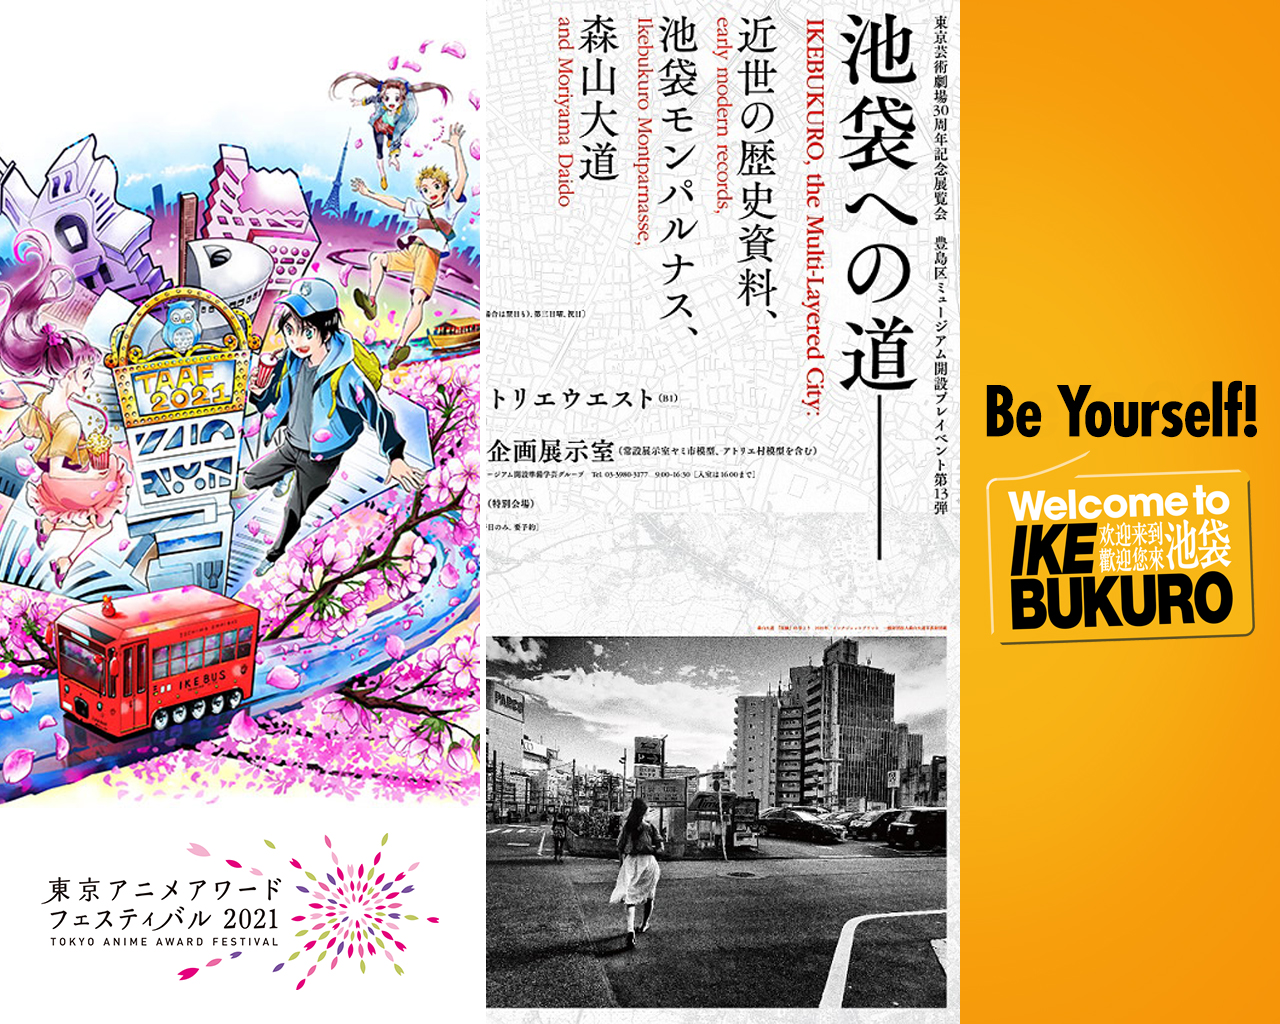 We would like to introduce two cultural activities of Ikebukuro.